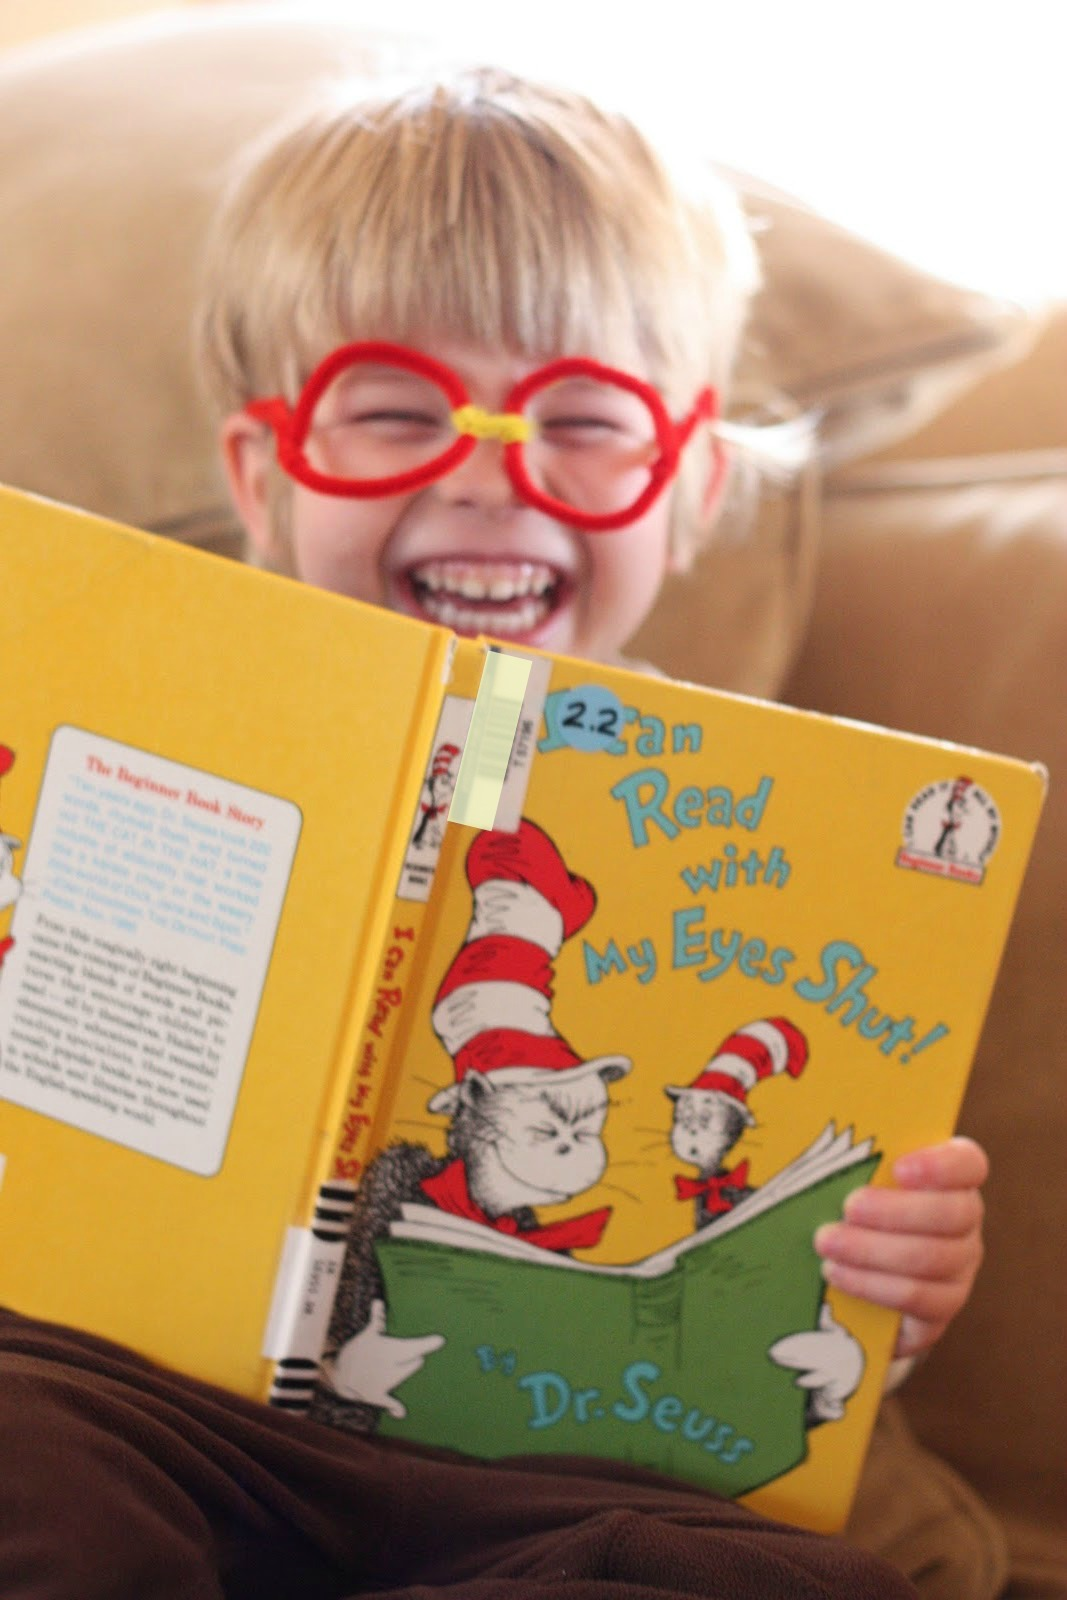 Dr. Seuss\' I Can Read with My Eyes Shut - I Can Teach My Child!